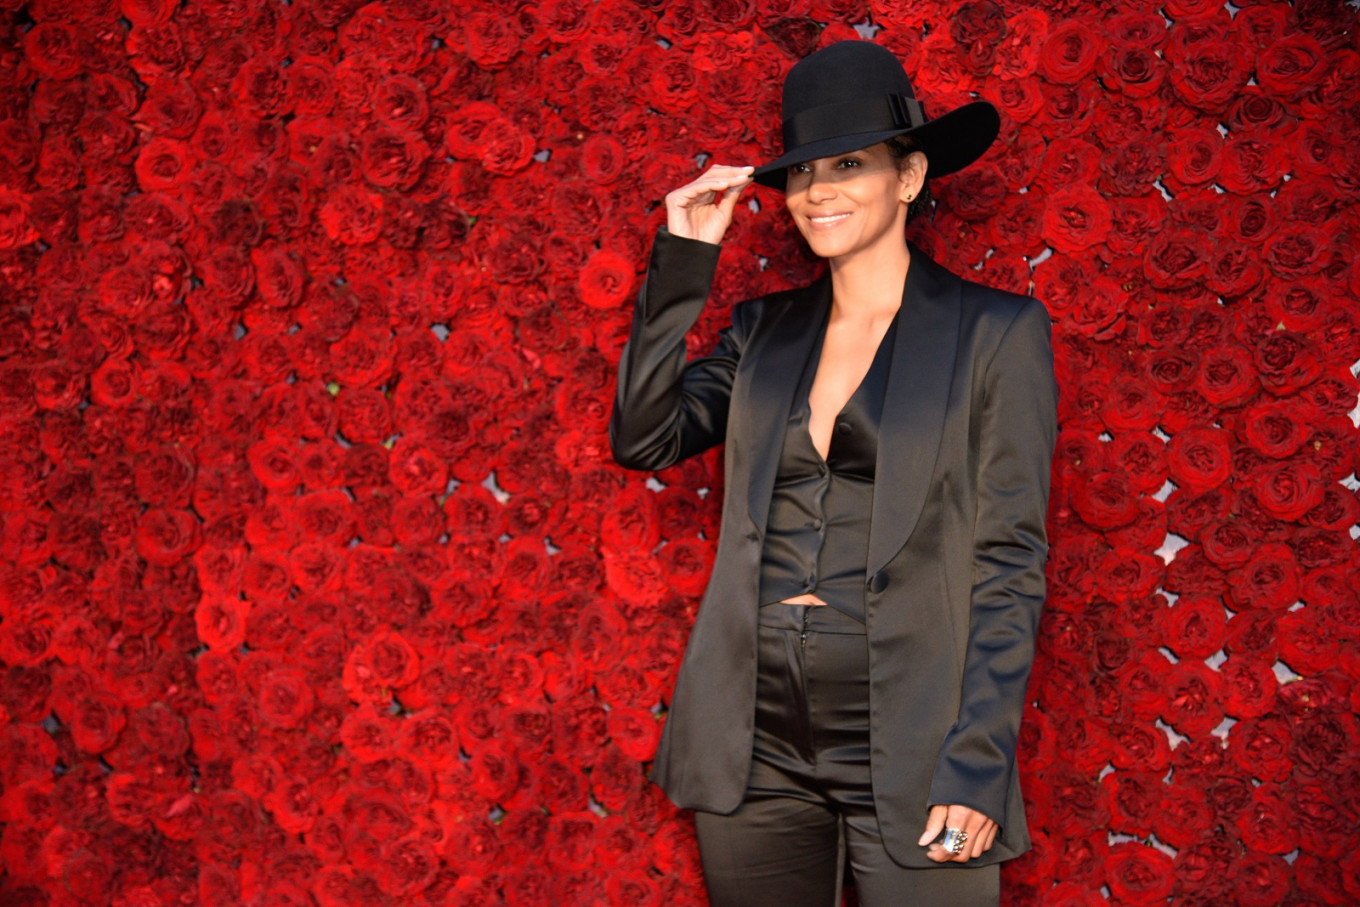 Halle Berry drops idea of playing transgender man after backlash from trans activists